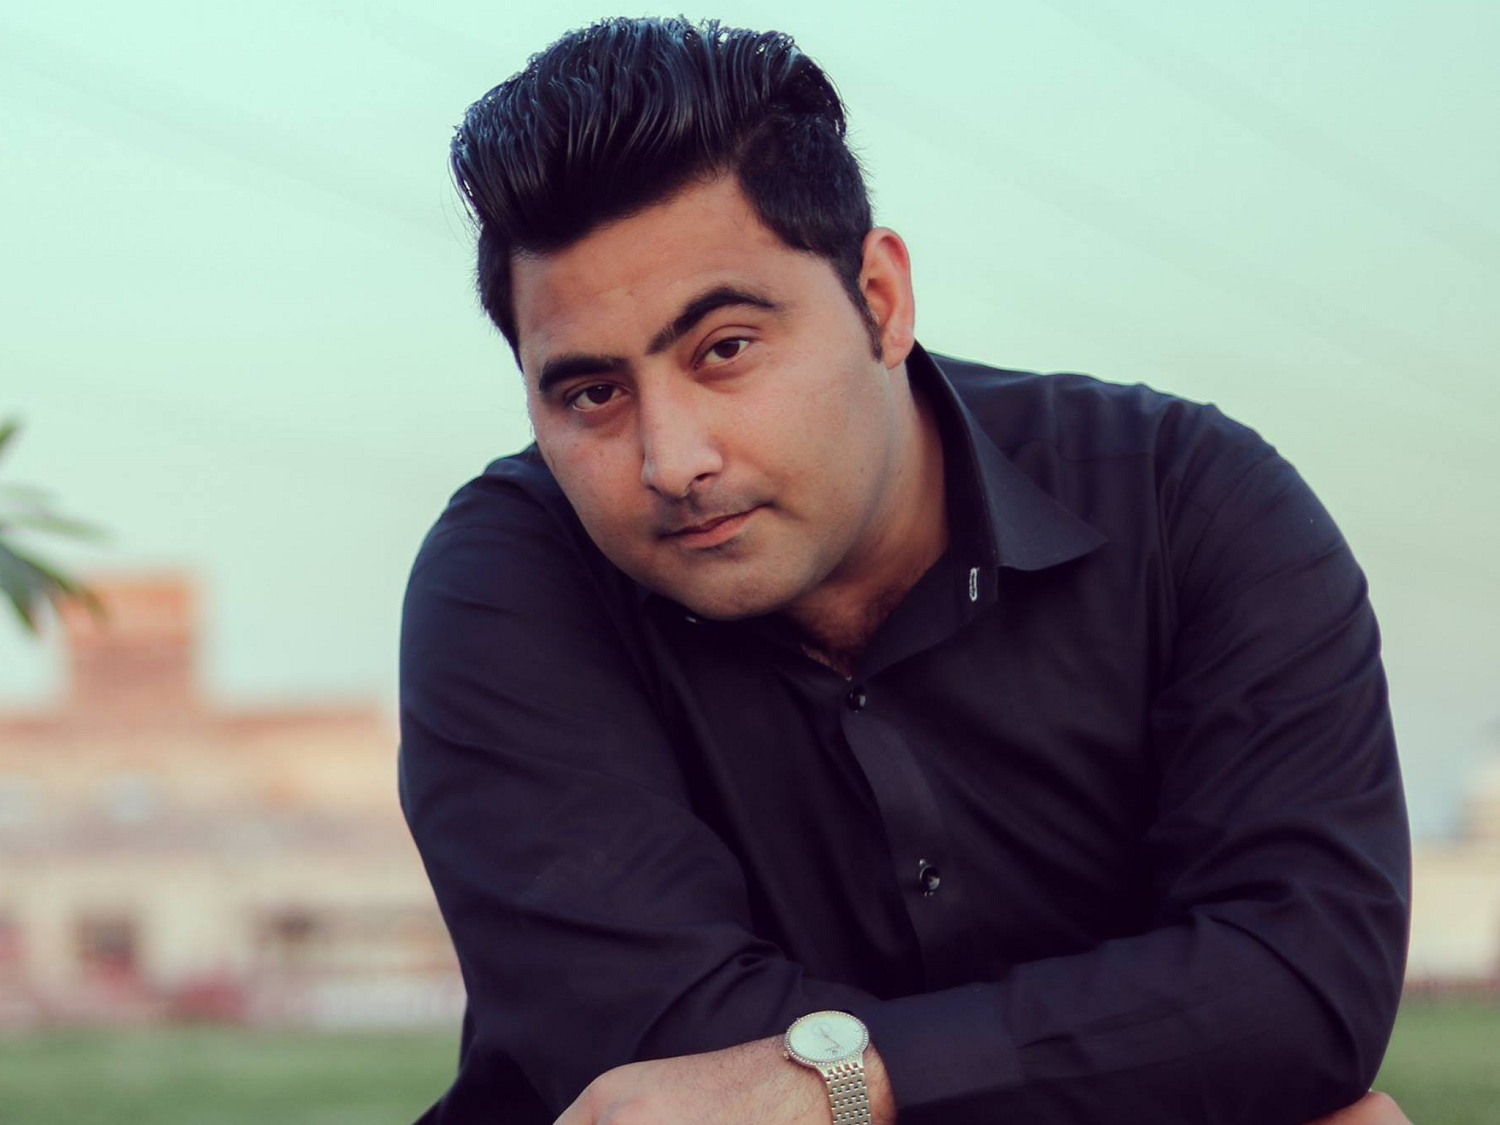 In April last year, a crowd killed Mashal Khan, a student of Abdul Wali Khan University, Mardan, based on an allegation that he posted blasphemous content online. (Supplied)